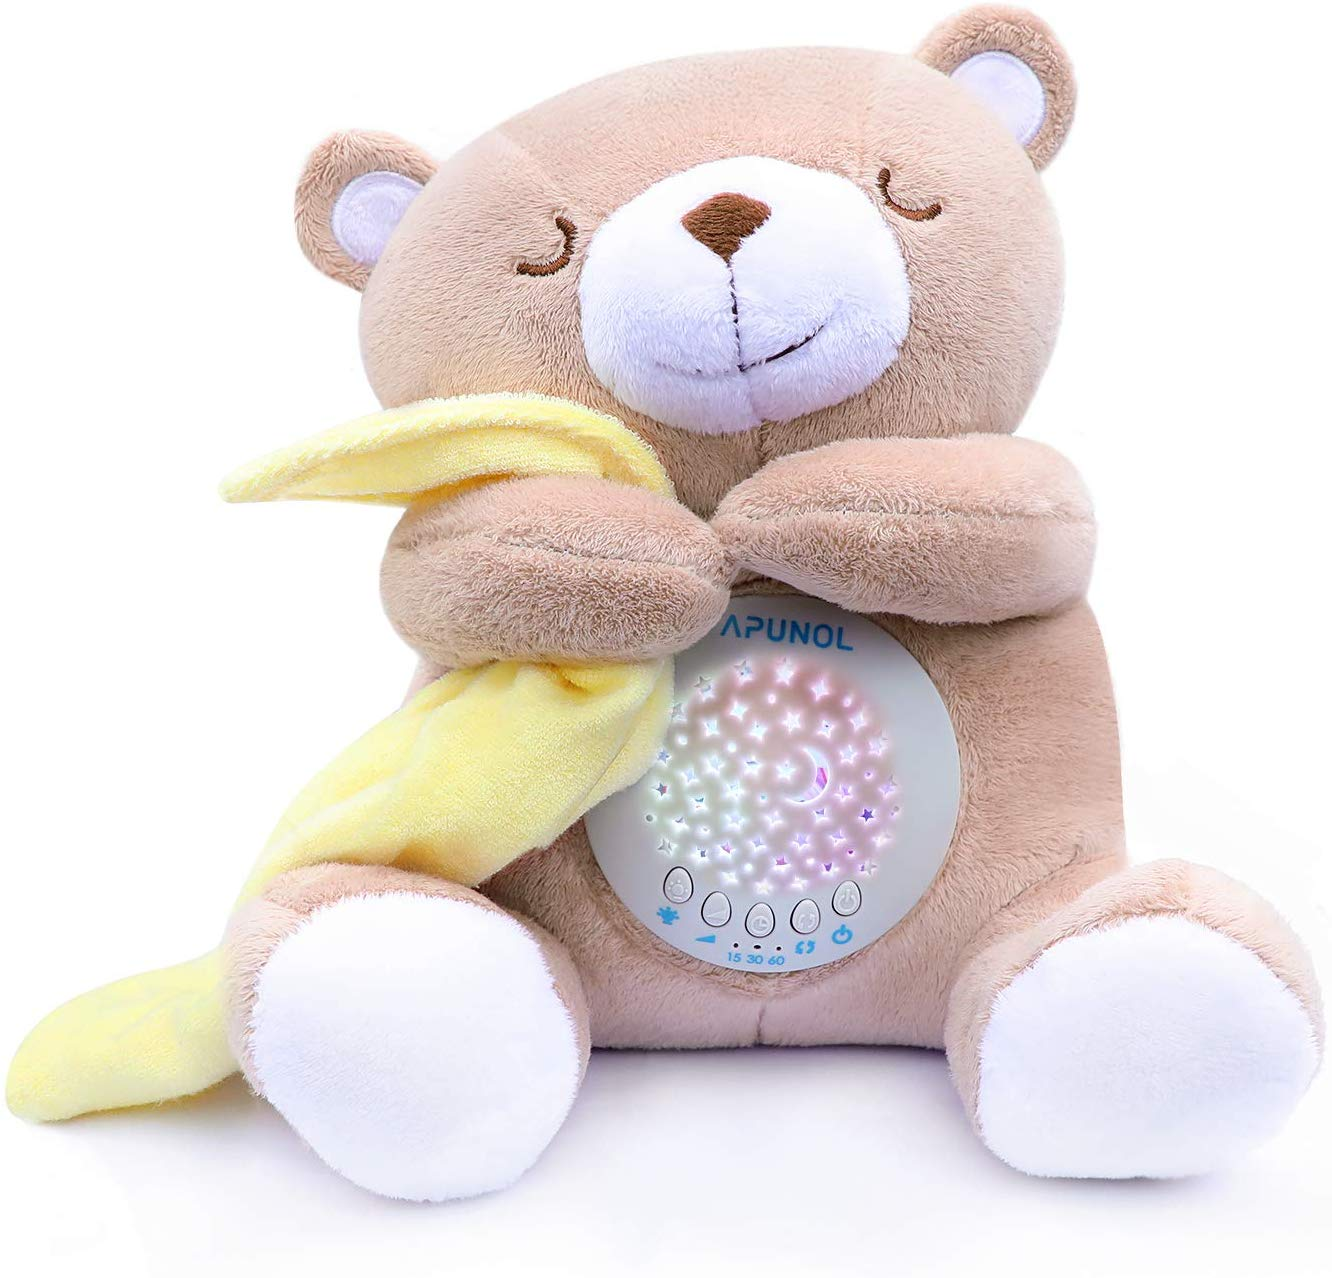 Portable Stuffed Teddy Baby Gifts Bear Toy